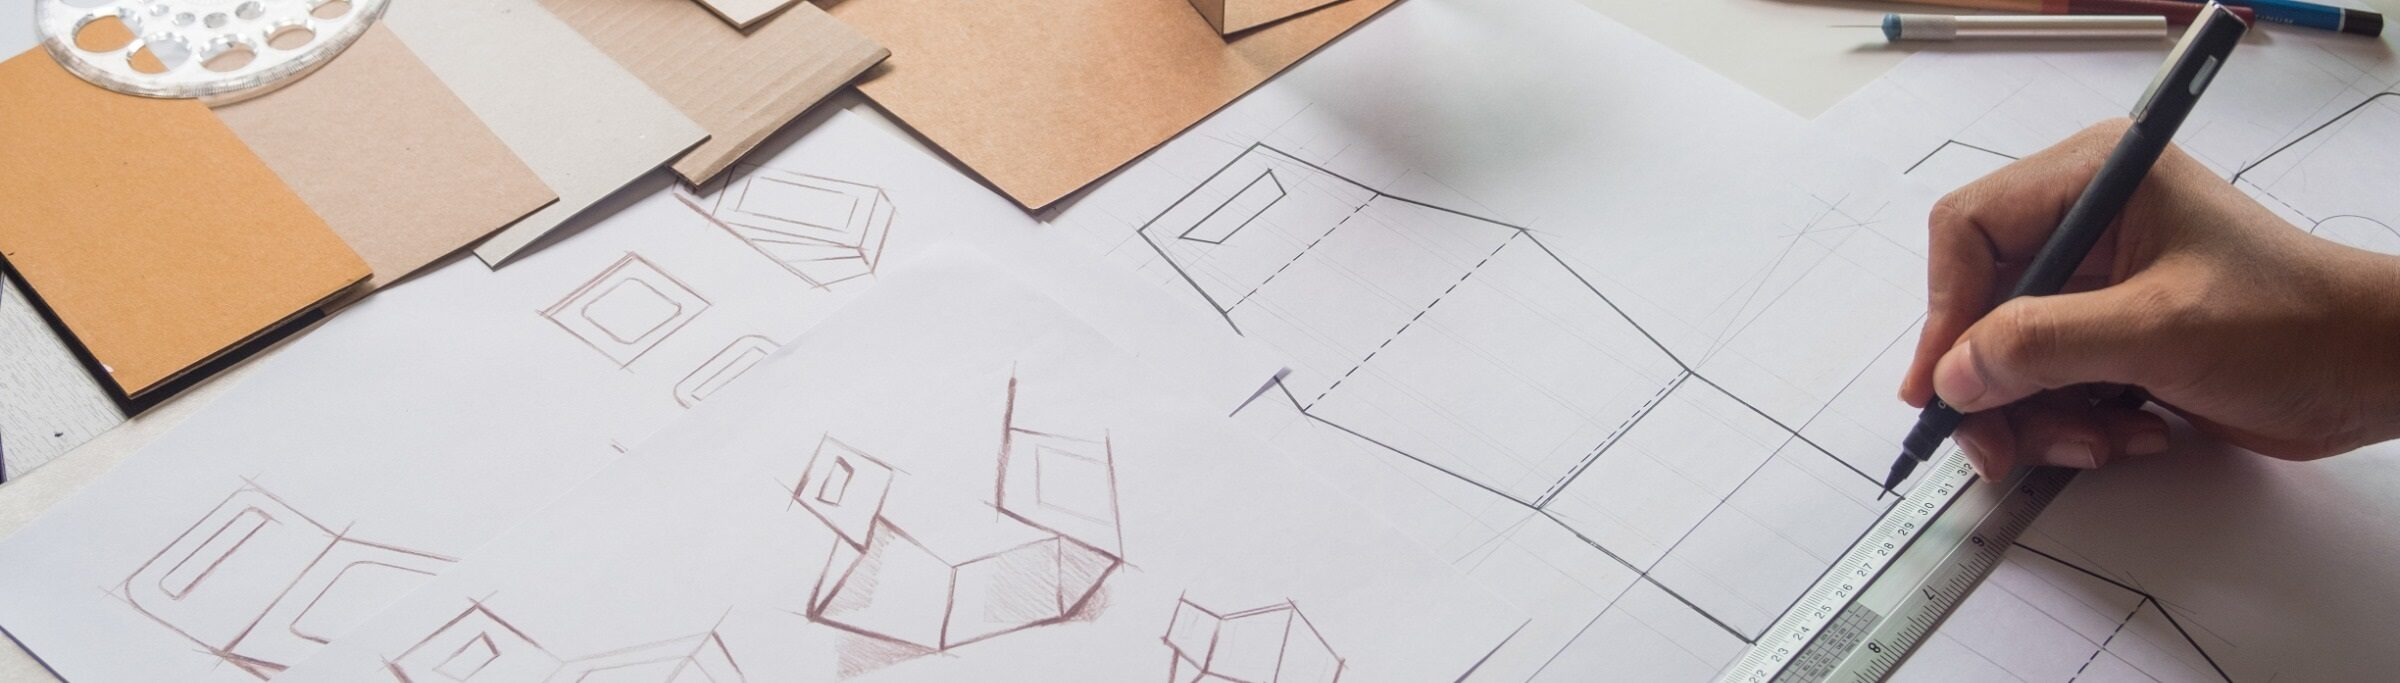 designer-sketching-drawing-design-brown-craft-cardboard-paper-product-picture-id1160699339 (1)